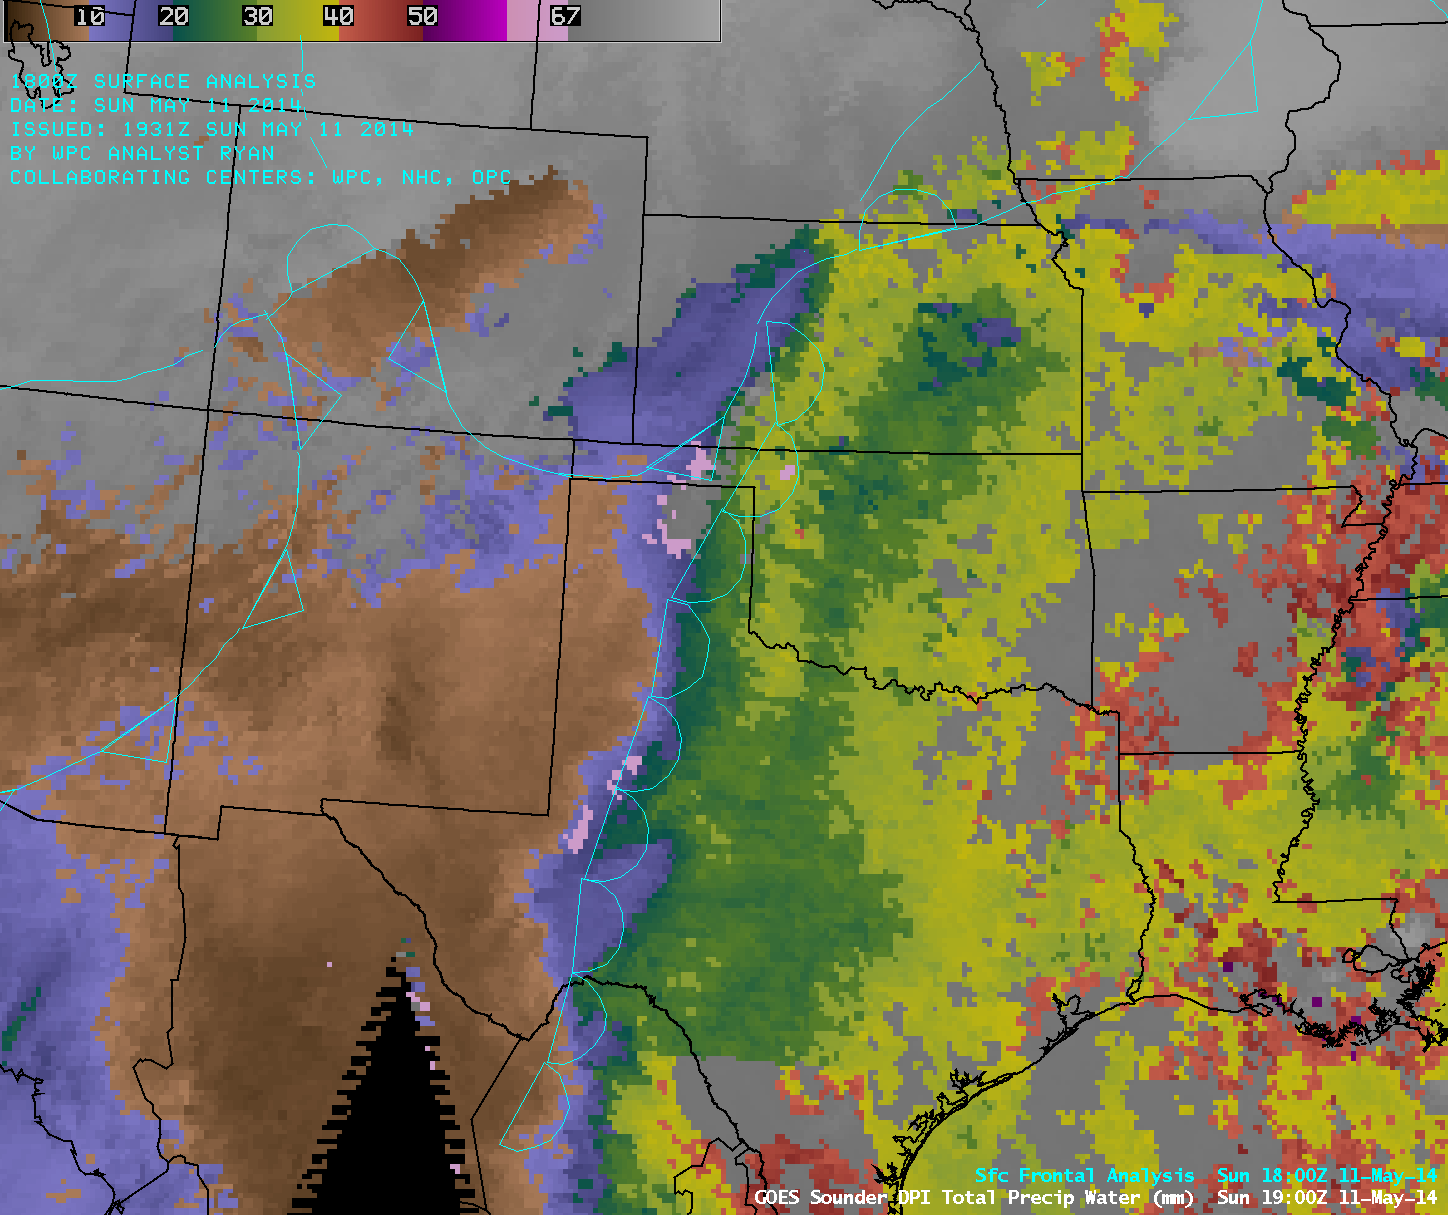 GOES-13 sounder Total Precipitable Water (TPW) derived product imagery (click to play animation)